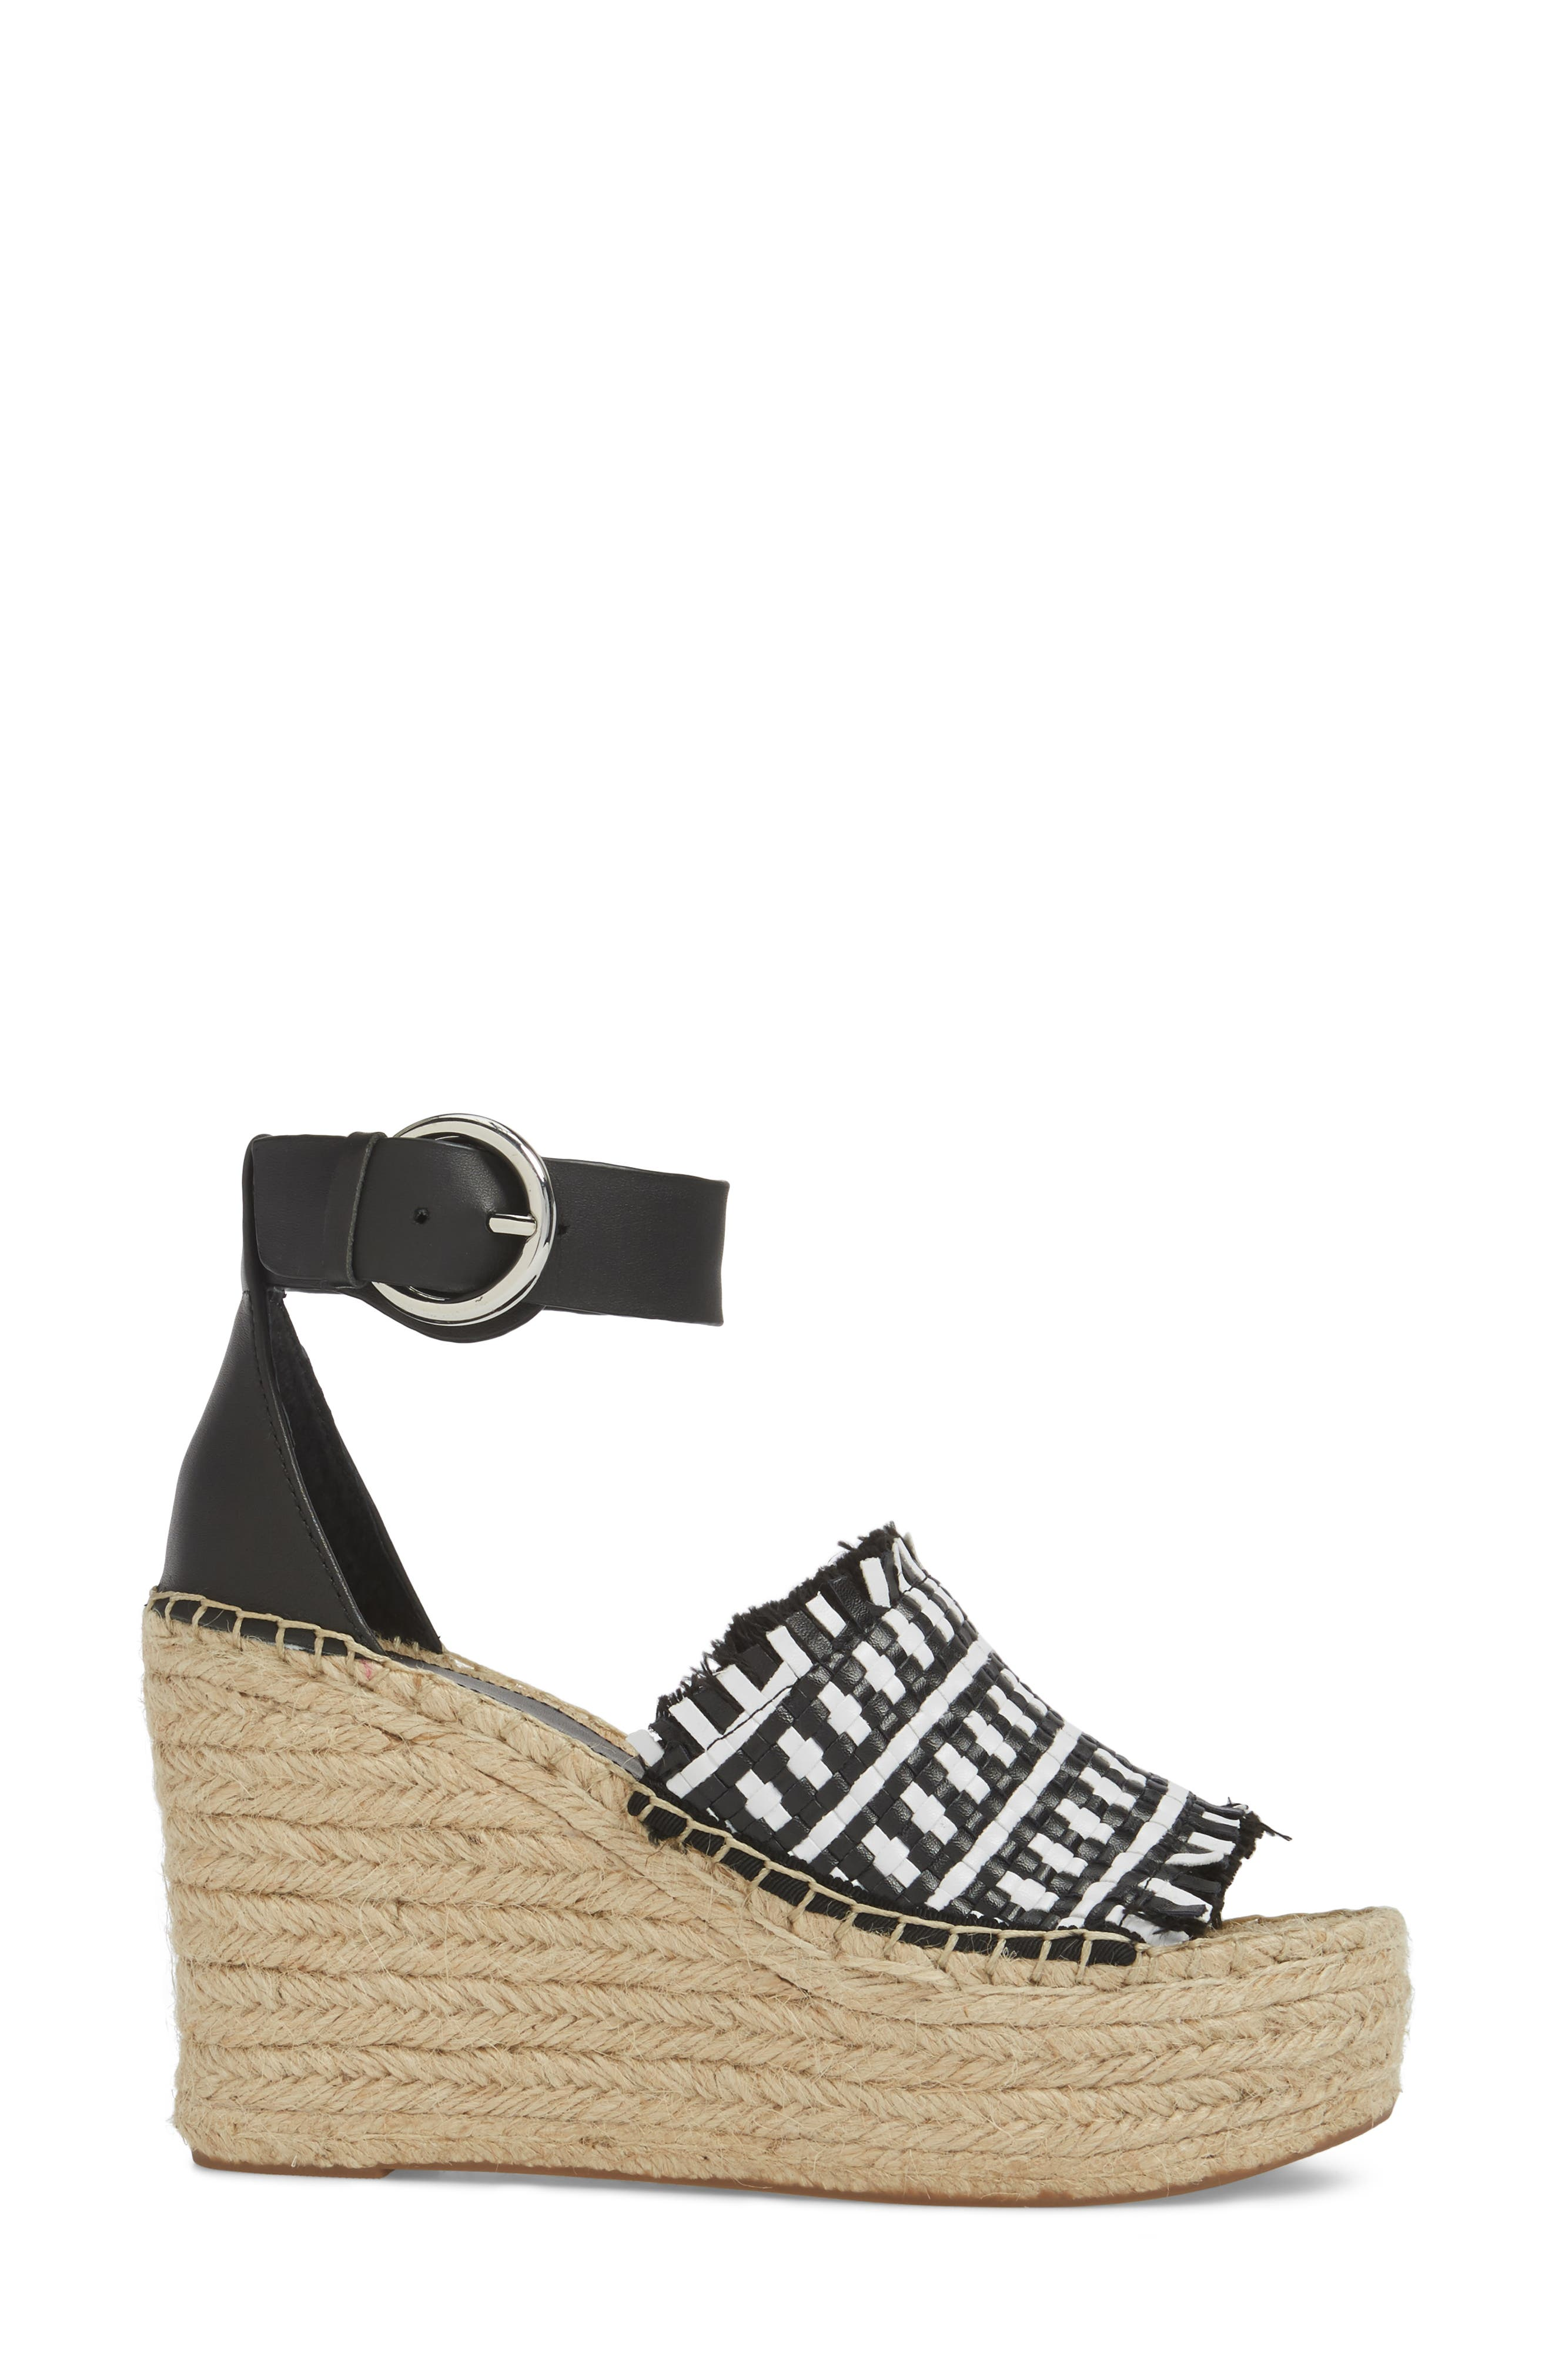 Andrew Espadrille Wedge Sandal,                             Alternate thumbnail 3, color,                             White/ Black Leather